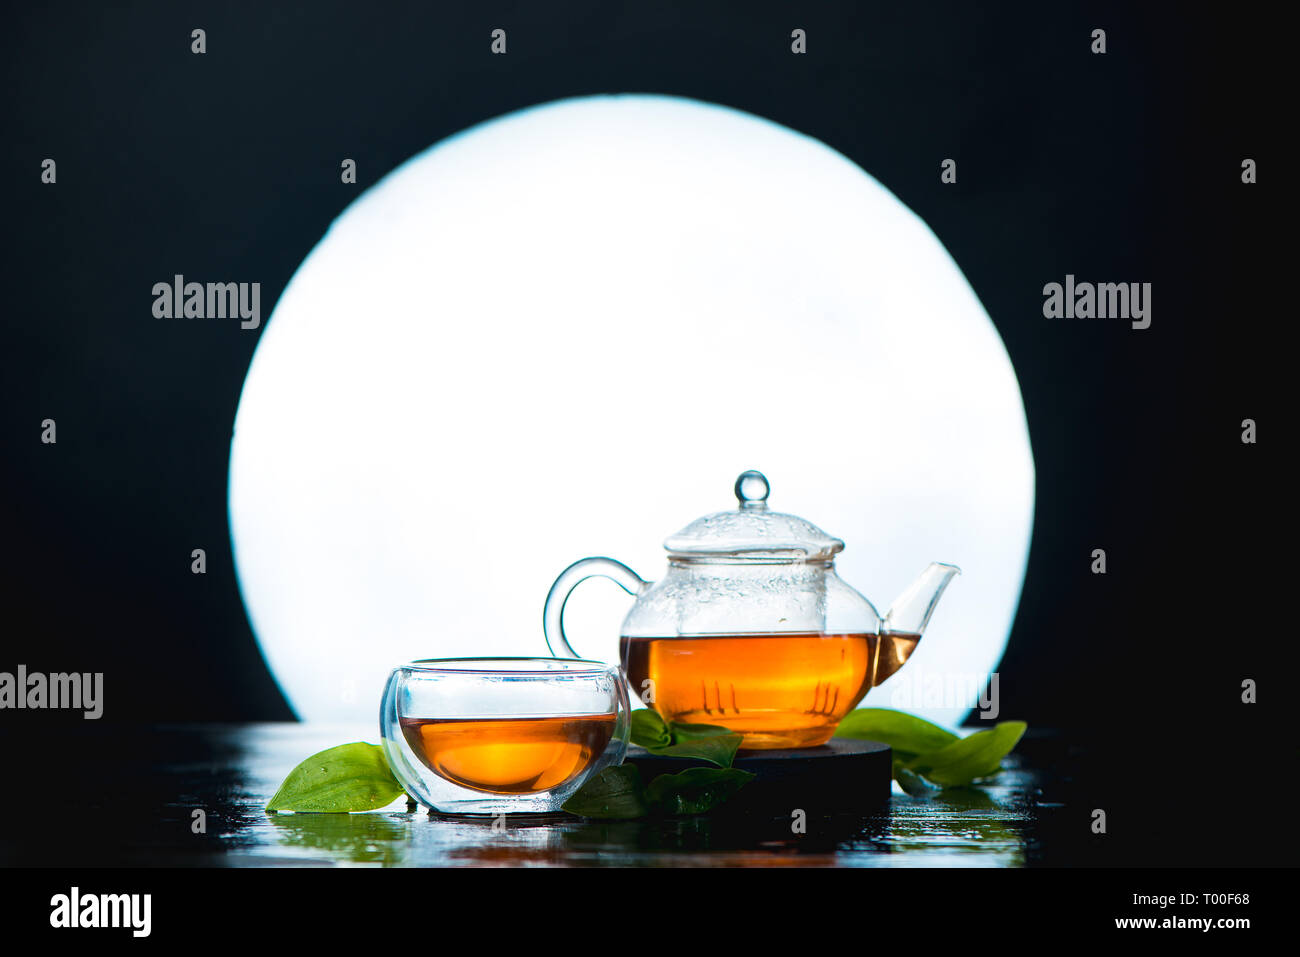 Asian tea ceremony still life header with a full moon. Glass tea bowl and teapot against a shining circle. - Stock Image